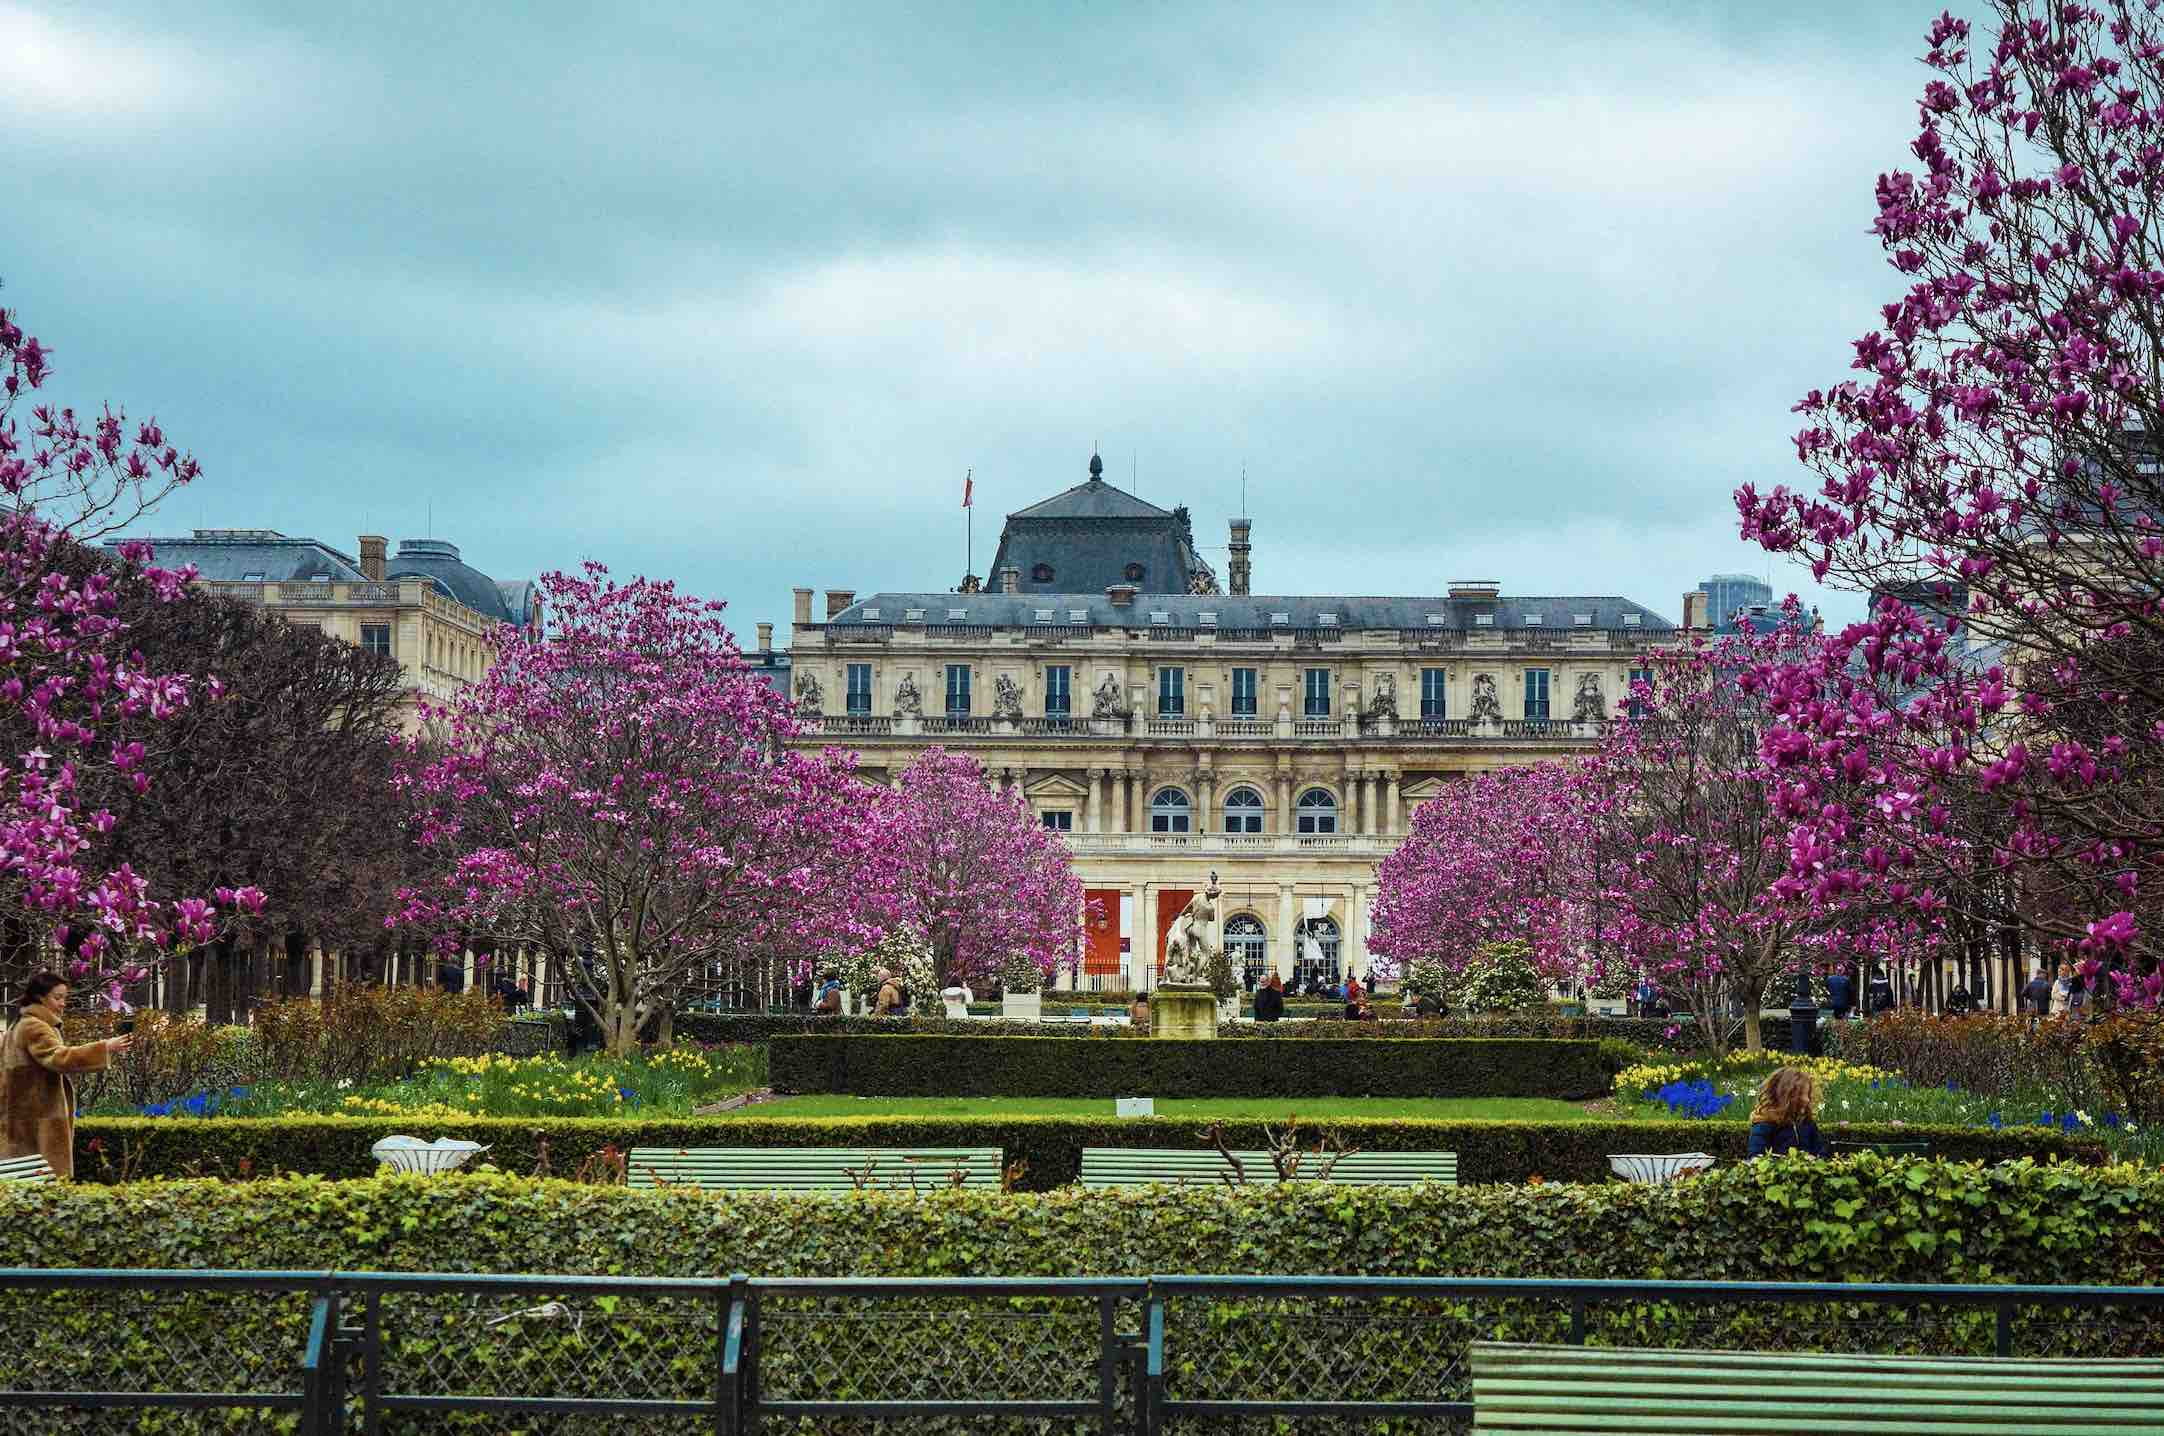 The famous Luxembourg Gardens inn summer is one of the best things to do in Paris for book lovers on a summer day